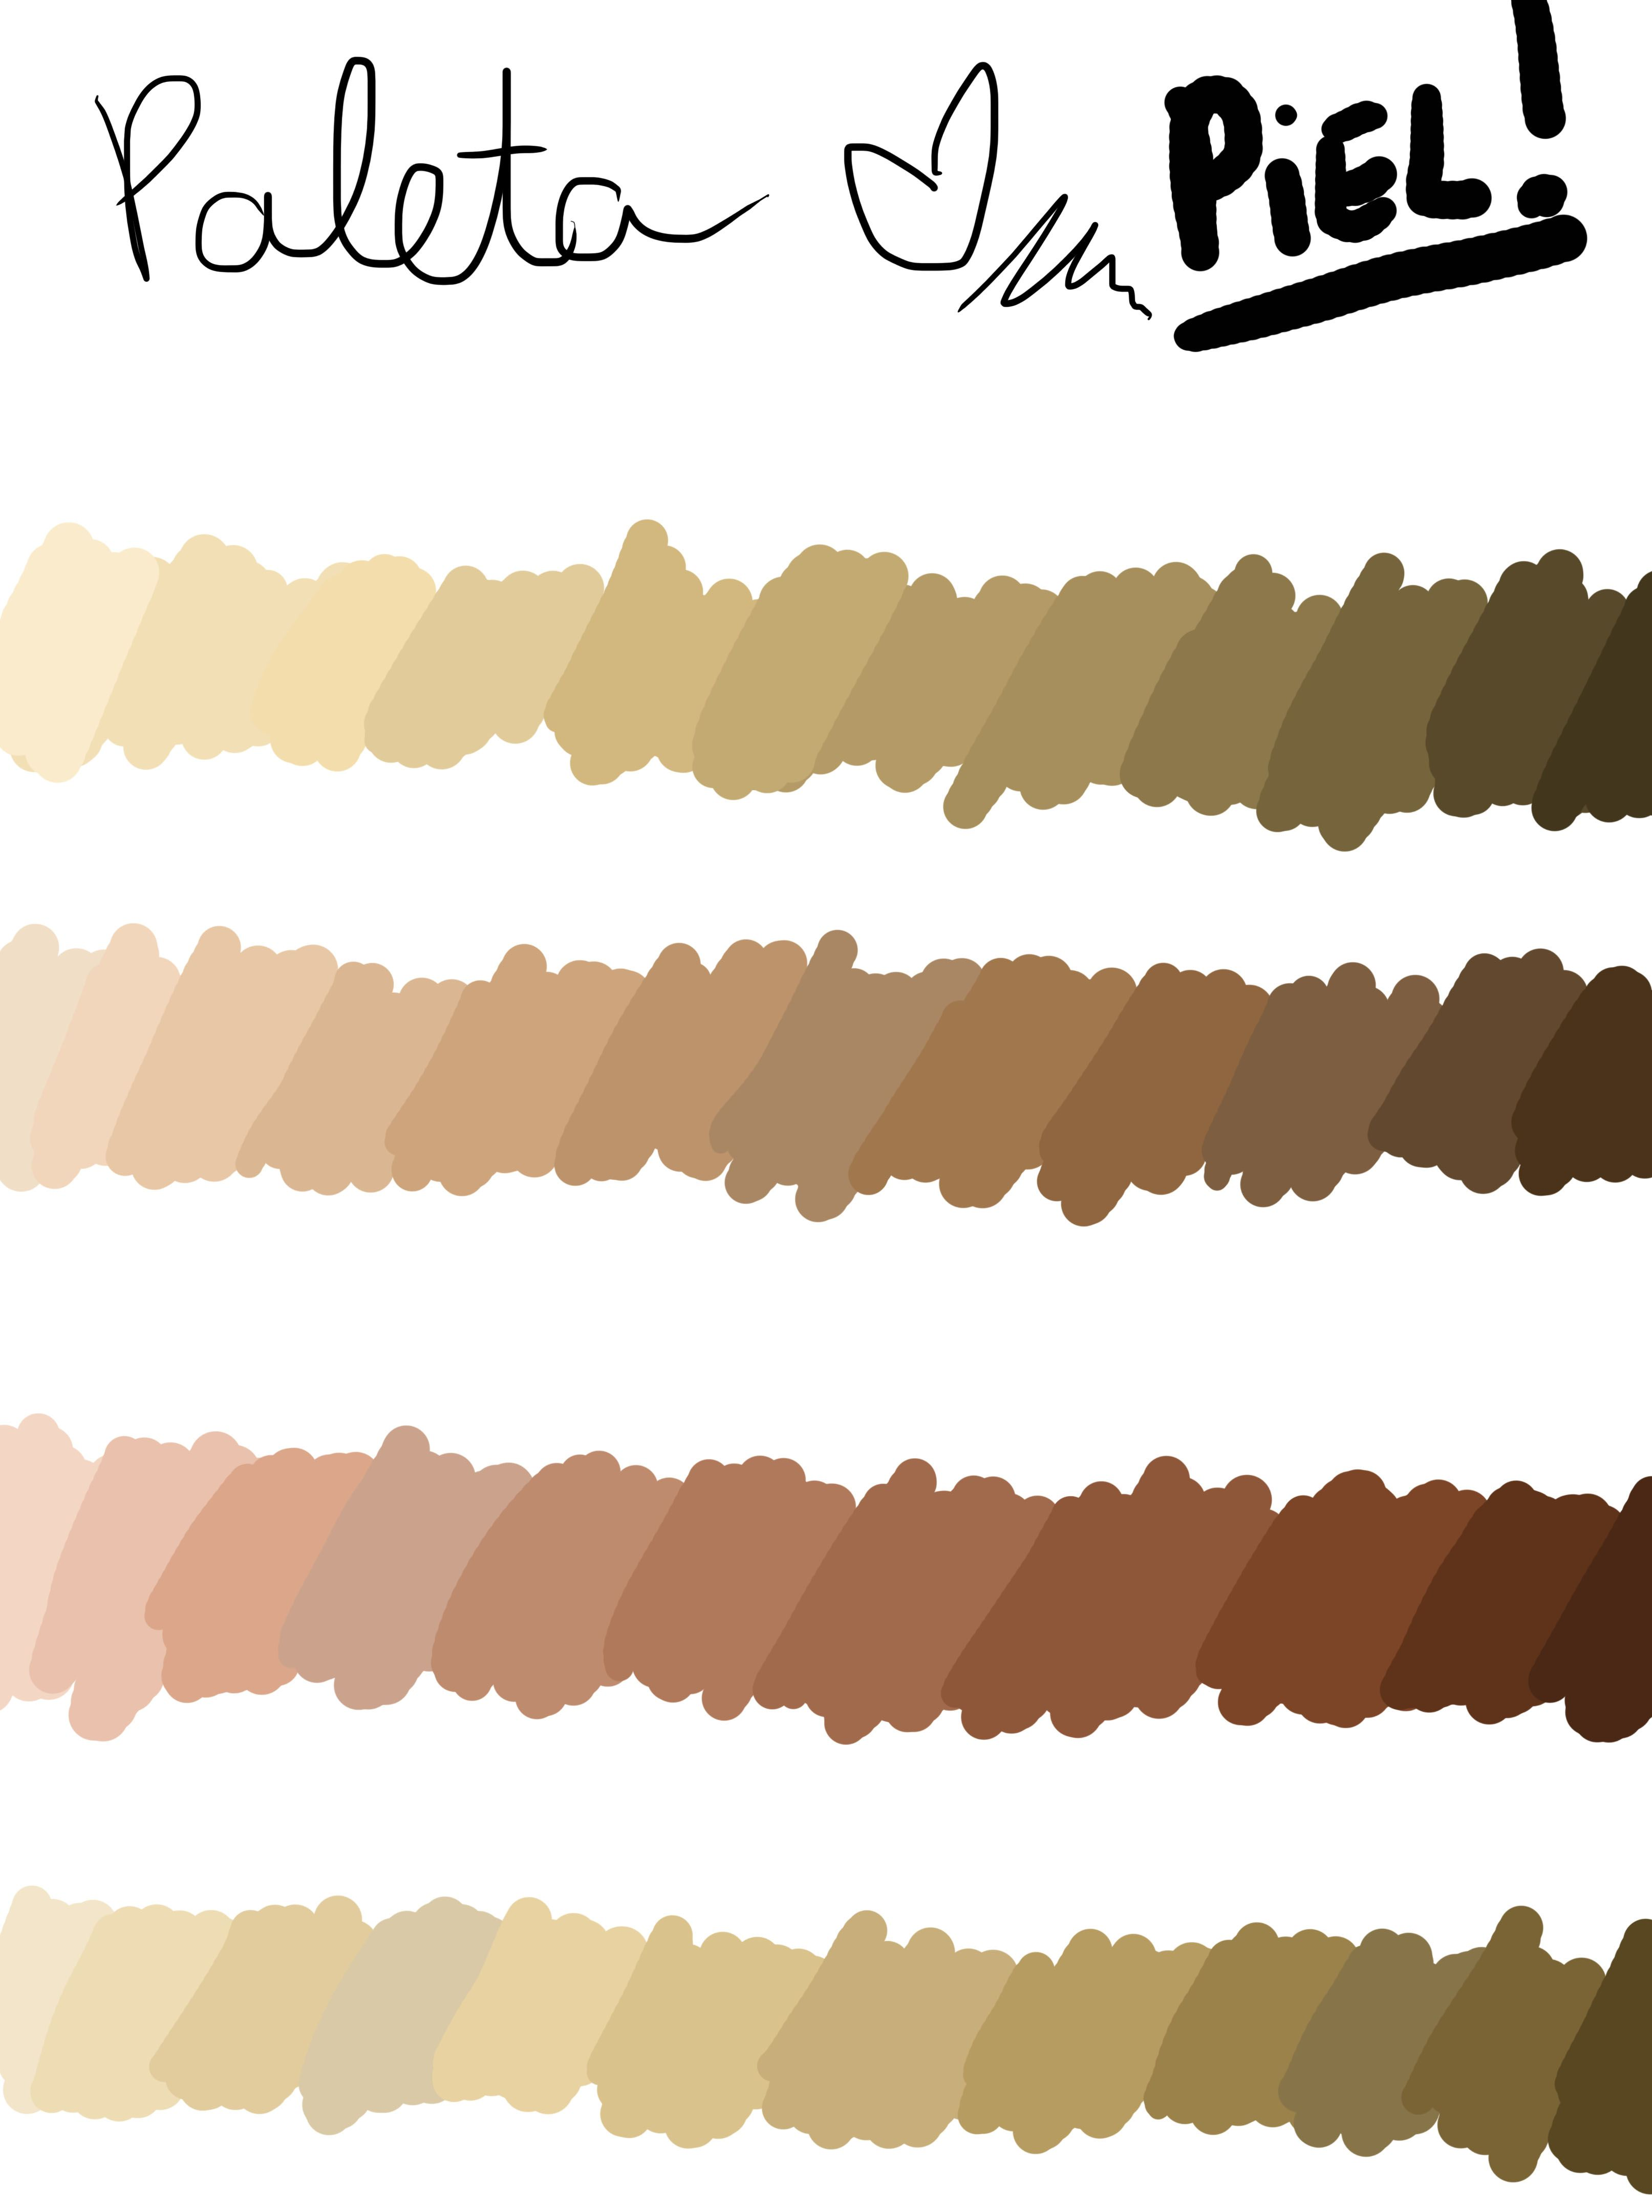 Paleta De Colores Para Tonalidades De Piel Different Skin Tones In A Palette Which Is Very Useful For Adobe P Colores De Piel Tonos De Piel Paletas De Colores